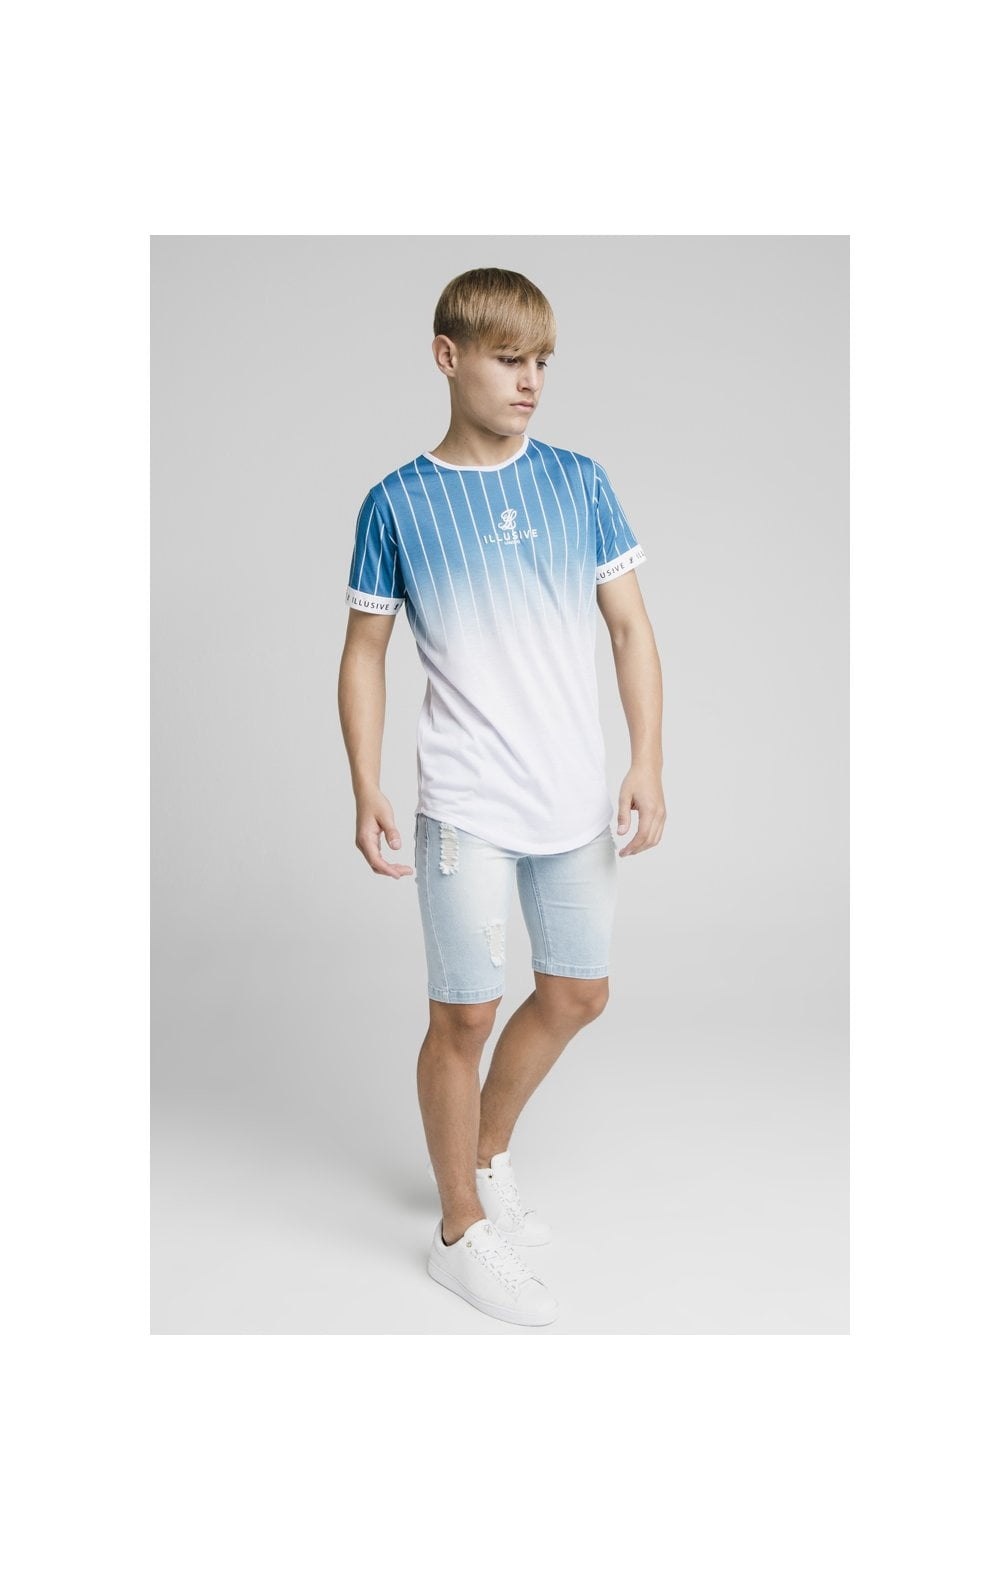 Illusive London Fade Stripe Tech Tee - Teal & White (2)